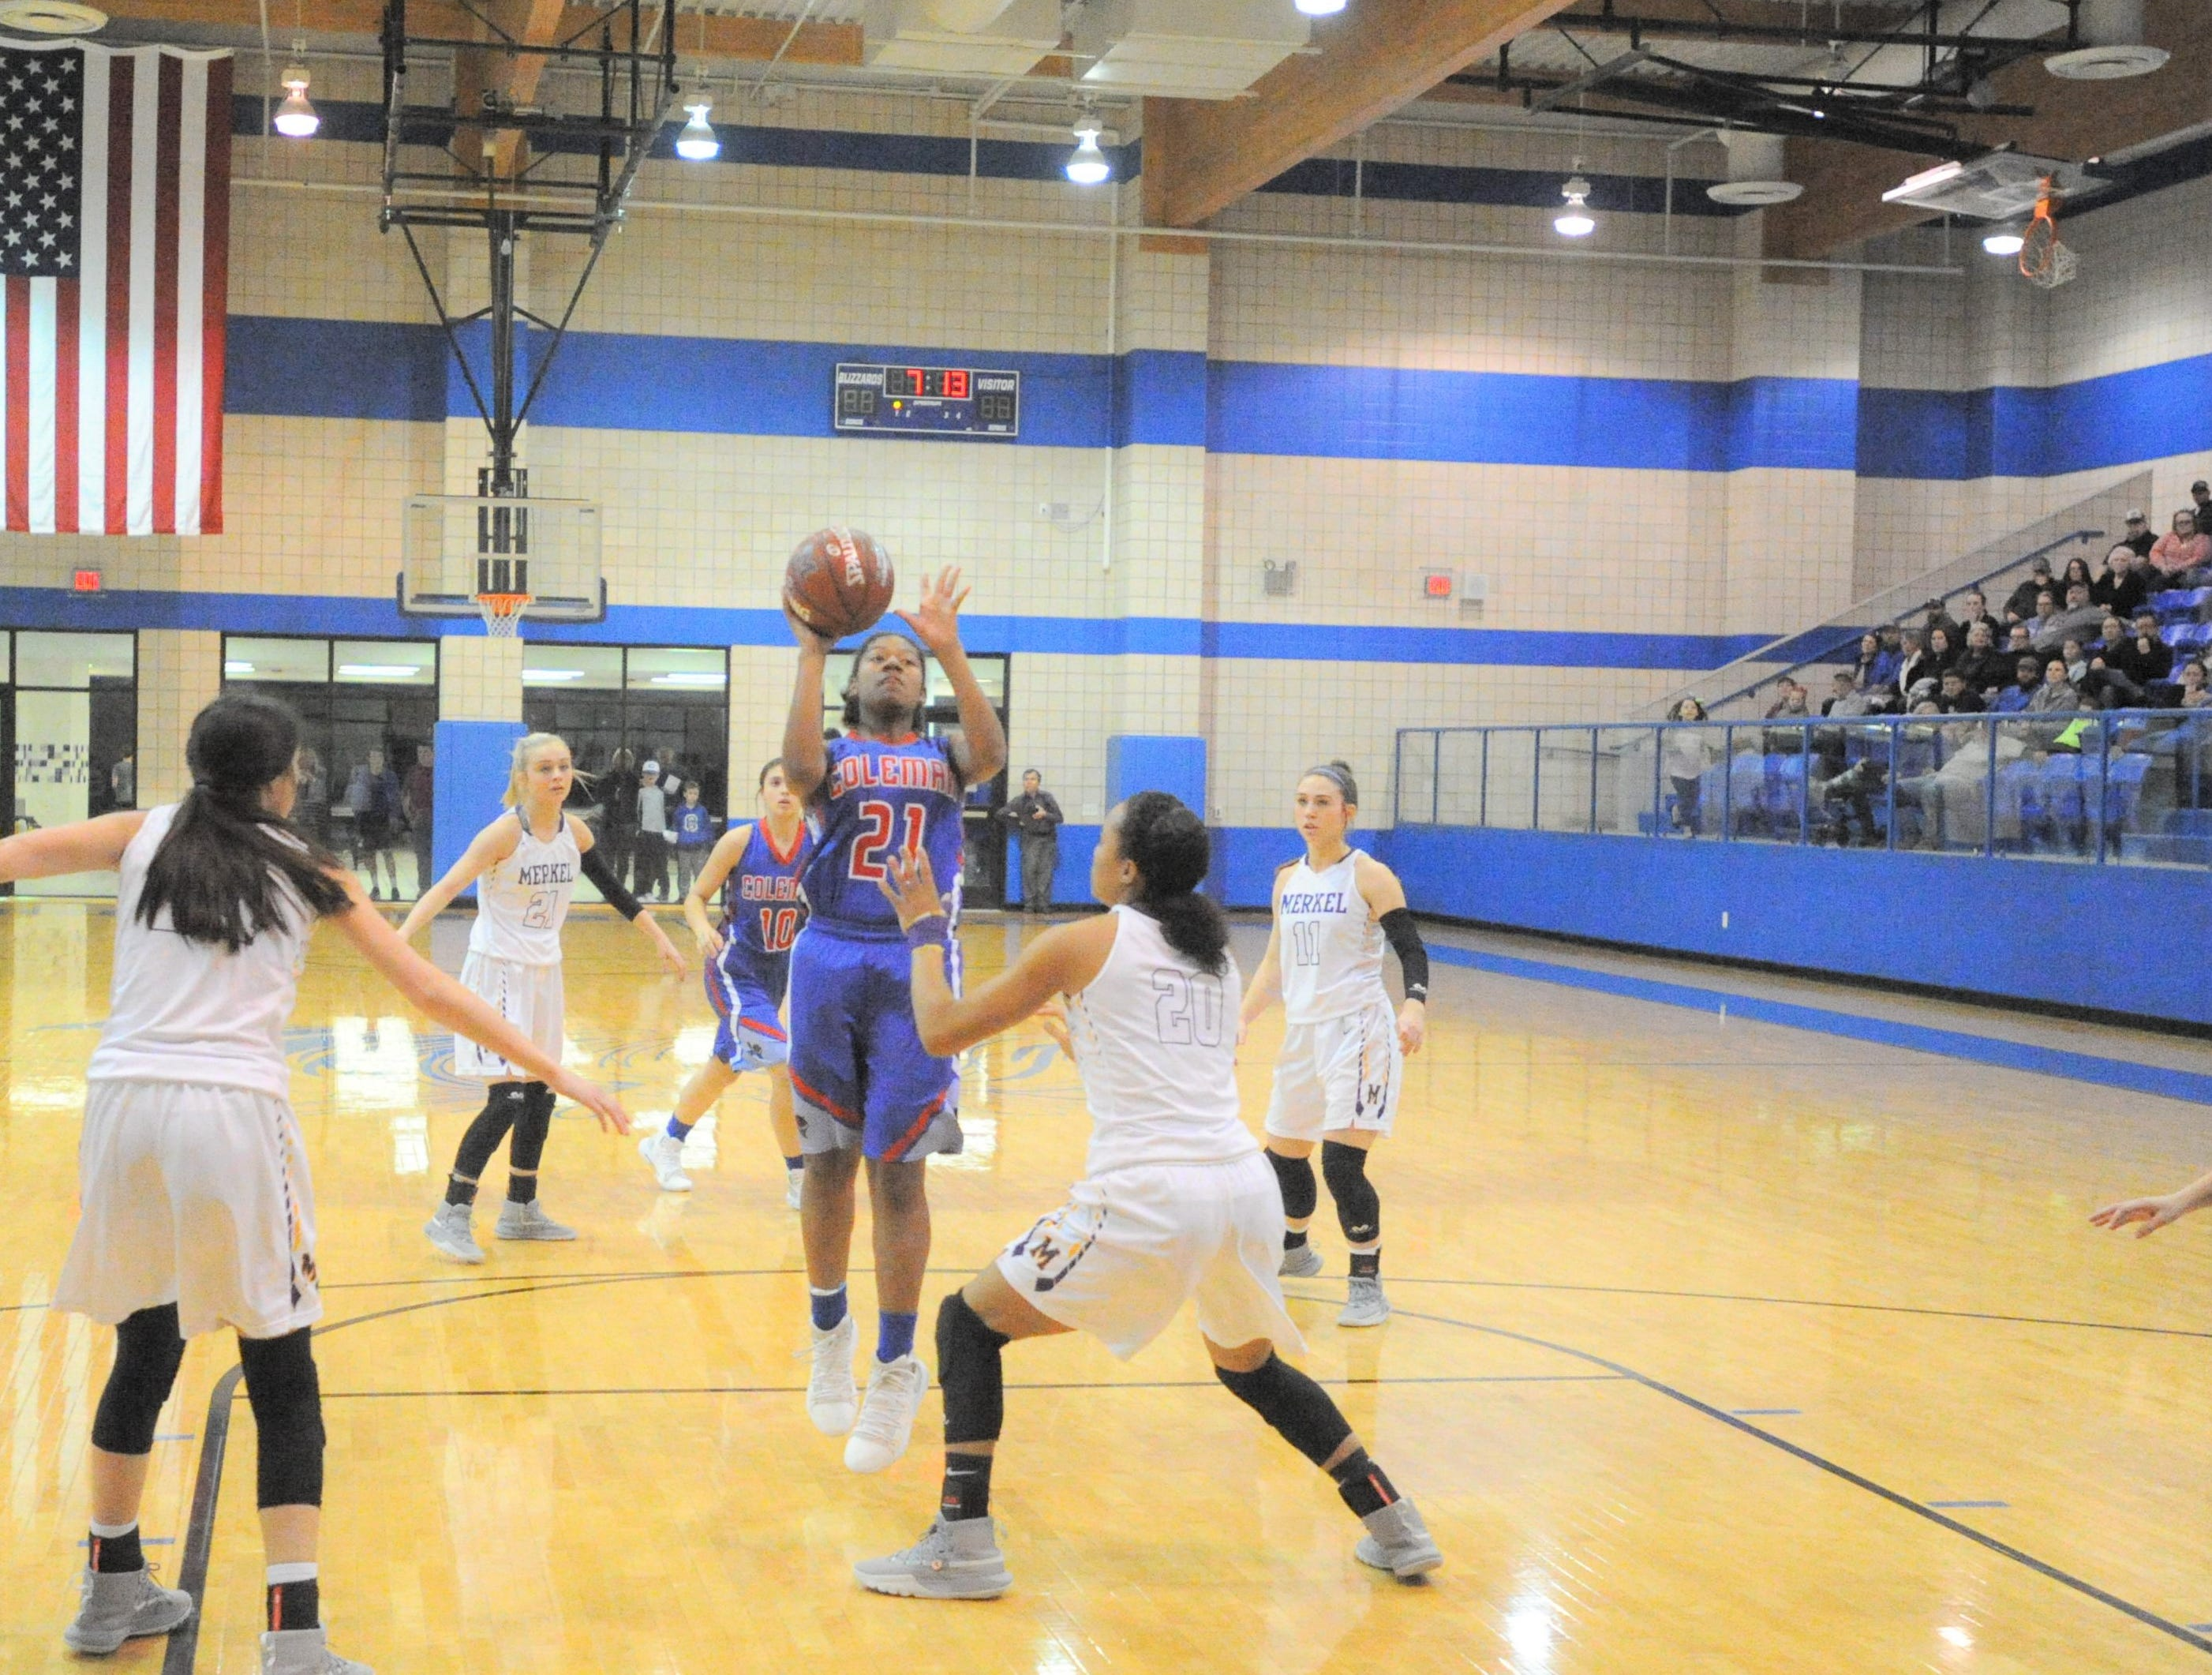 Coleman senior Damara Thomas (21) goes up for a shot in the lane against Merkel in a bi-district playoff at Winters High School on Monday, Feb. 11, 2019.